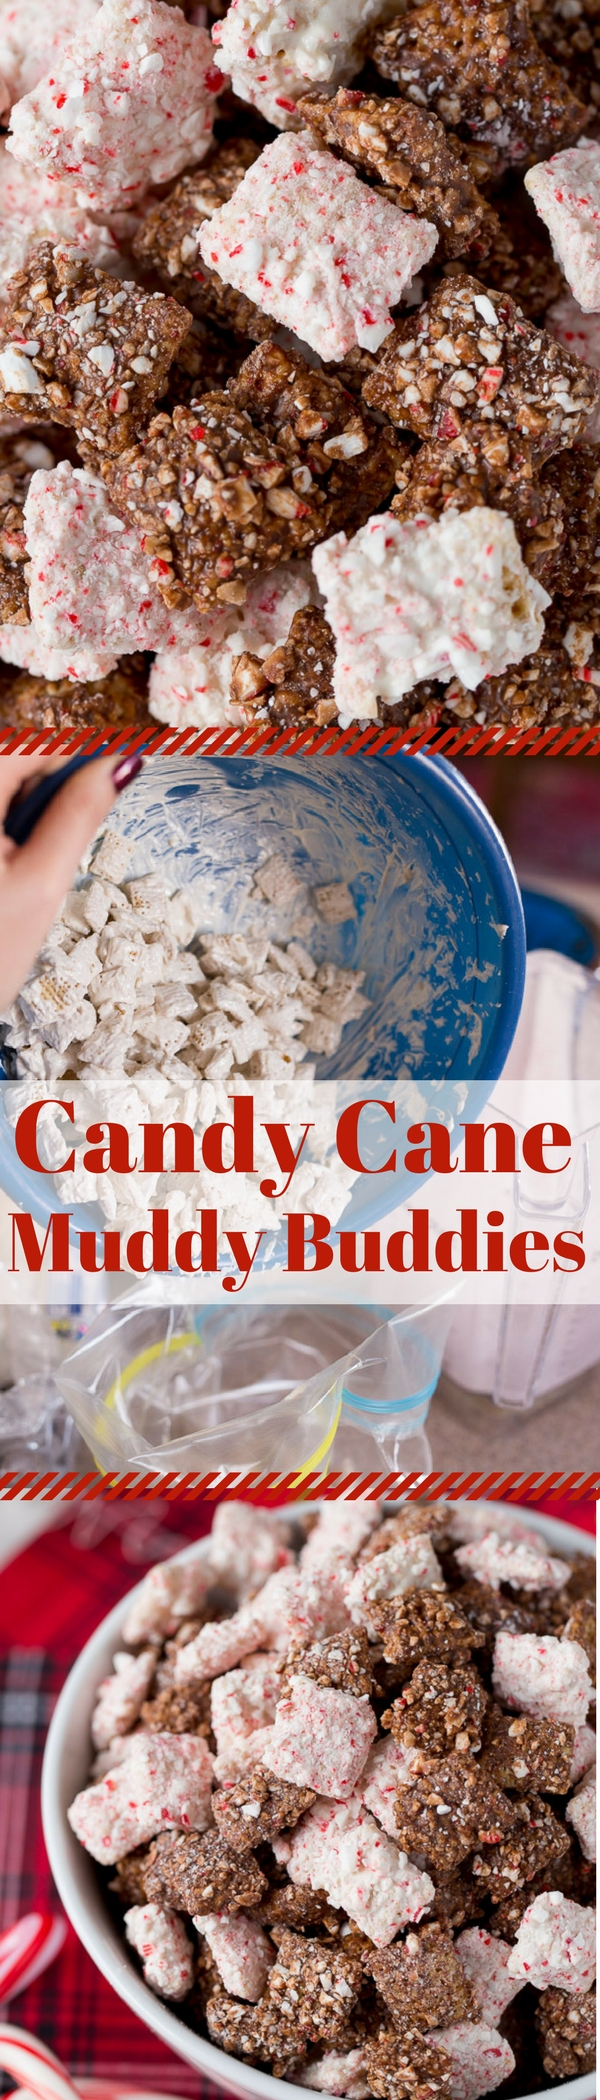 Candy Cane Muddy Buddies  for Christmas!  These are AMAZING and the perfect easy treat to make for neighbors and parties!